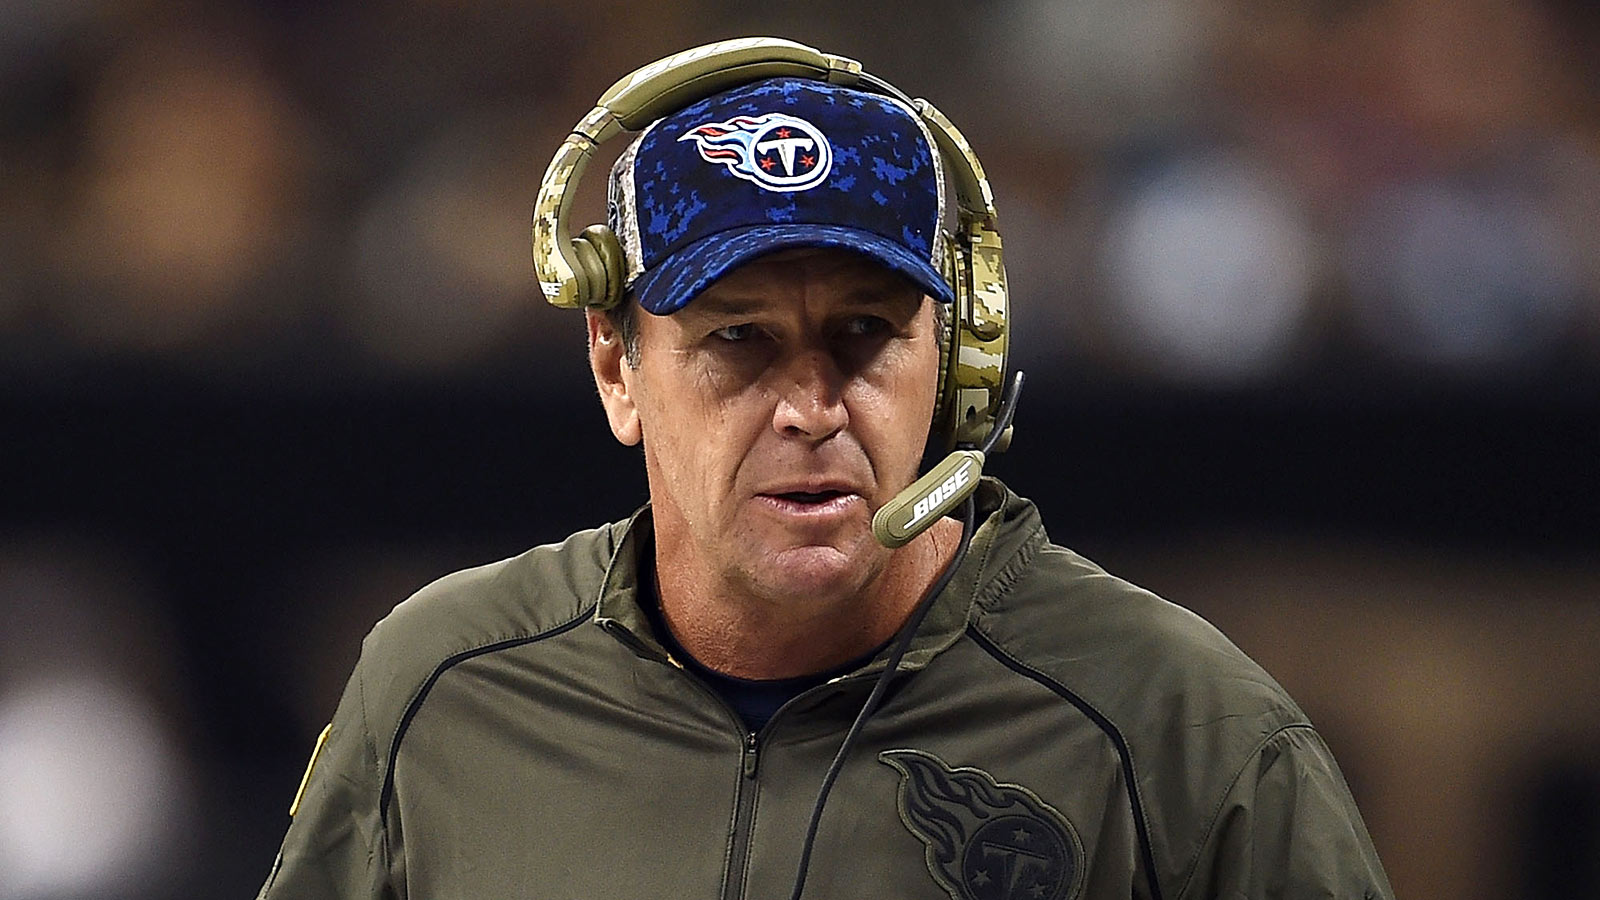 Mularkey's return brings back bad memories for Jaguars